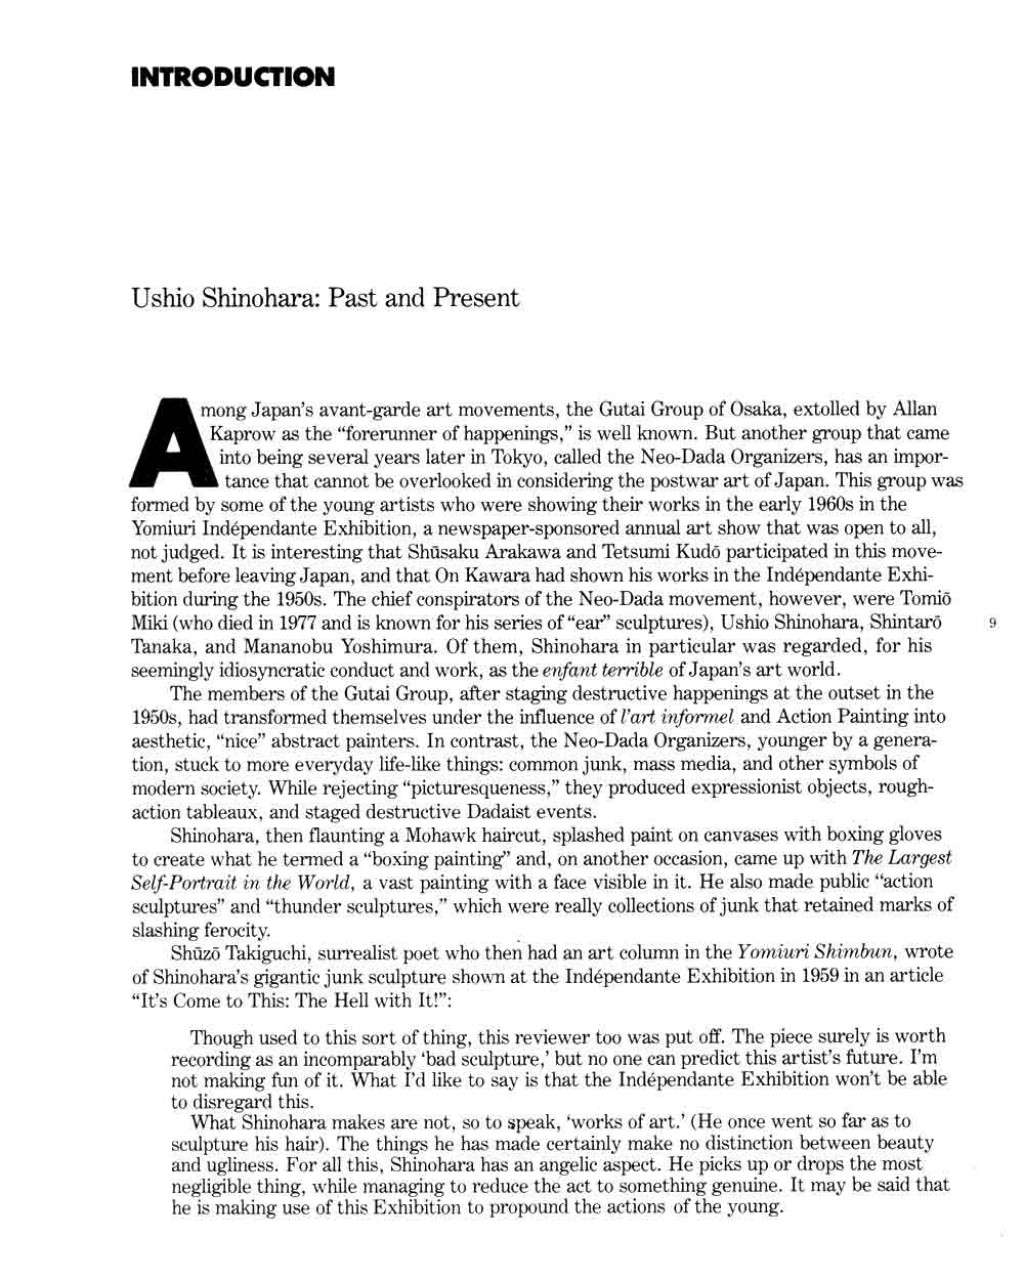 017 How To Cite An Essay In Mla Ushio Shinohara Past And Present Pg 1 Surprising Within A Textbook Book 8 Text Large